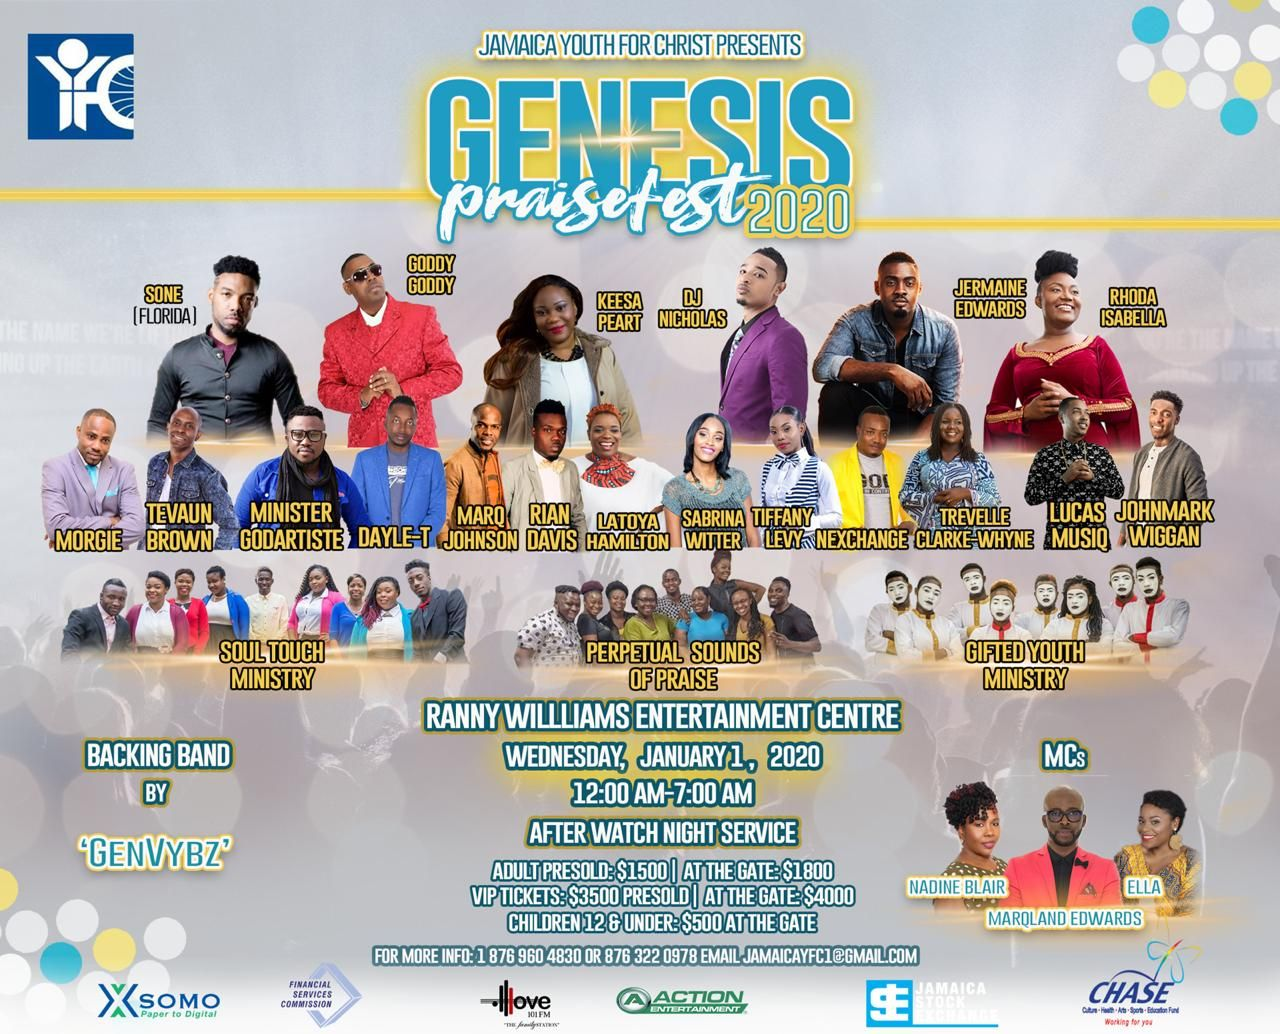 Jamaica Youth For Christ Presents Genesis 2020